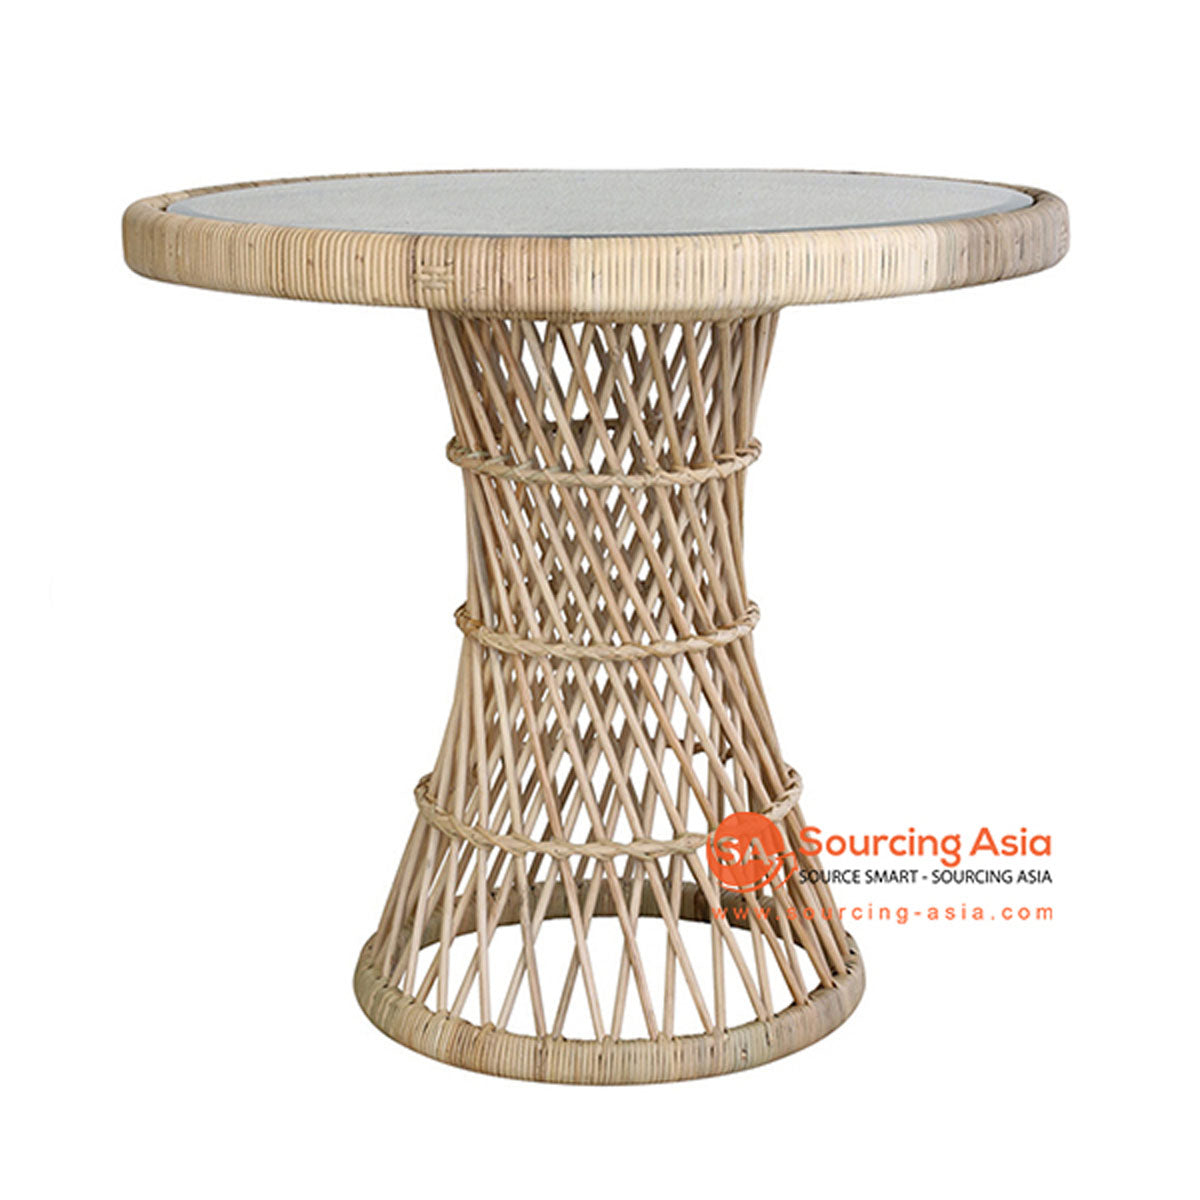 SHL158 NATURAL RATTAN TABLE WITH ROUND TOP AND INSERTED GLASS